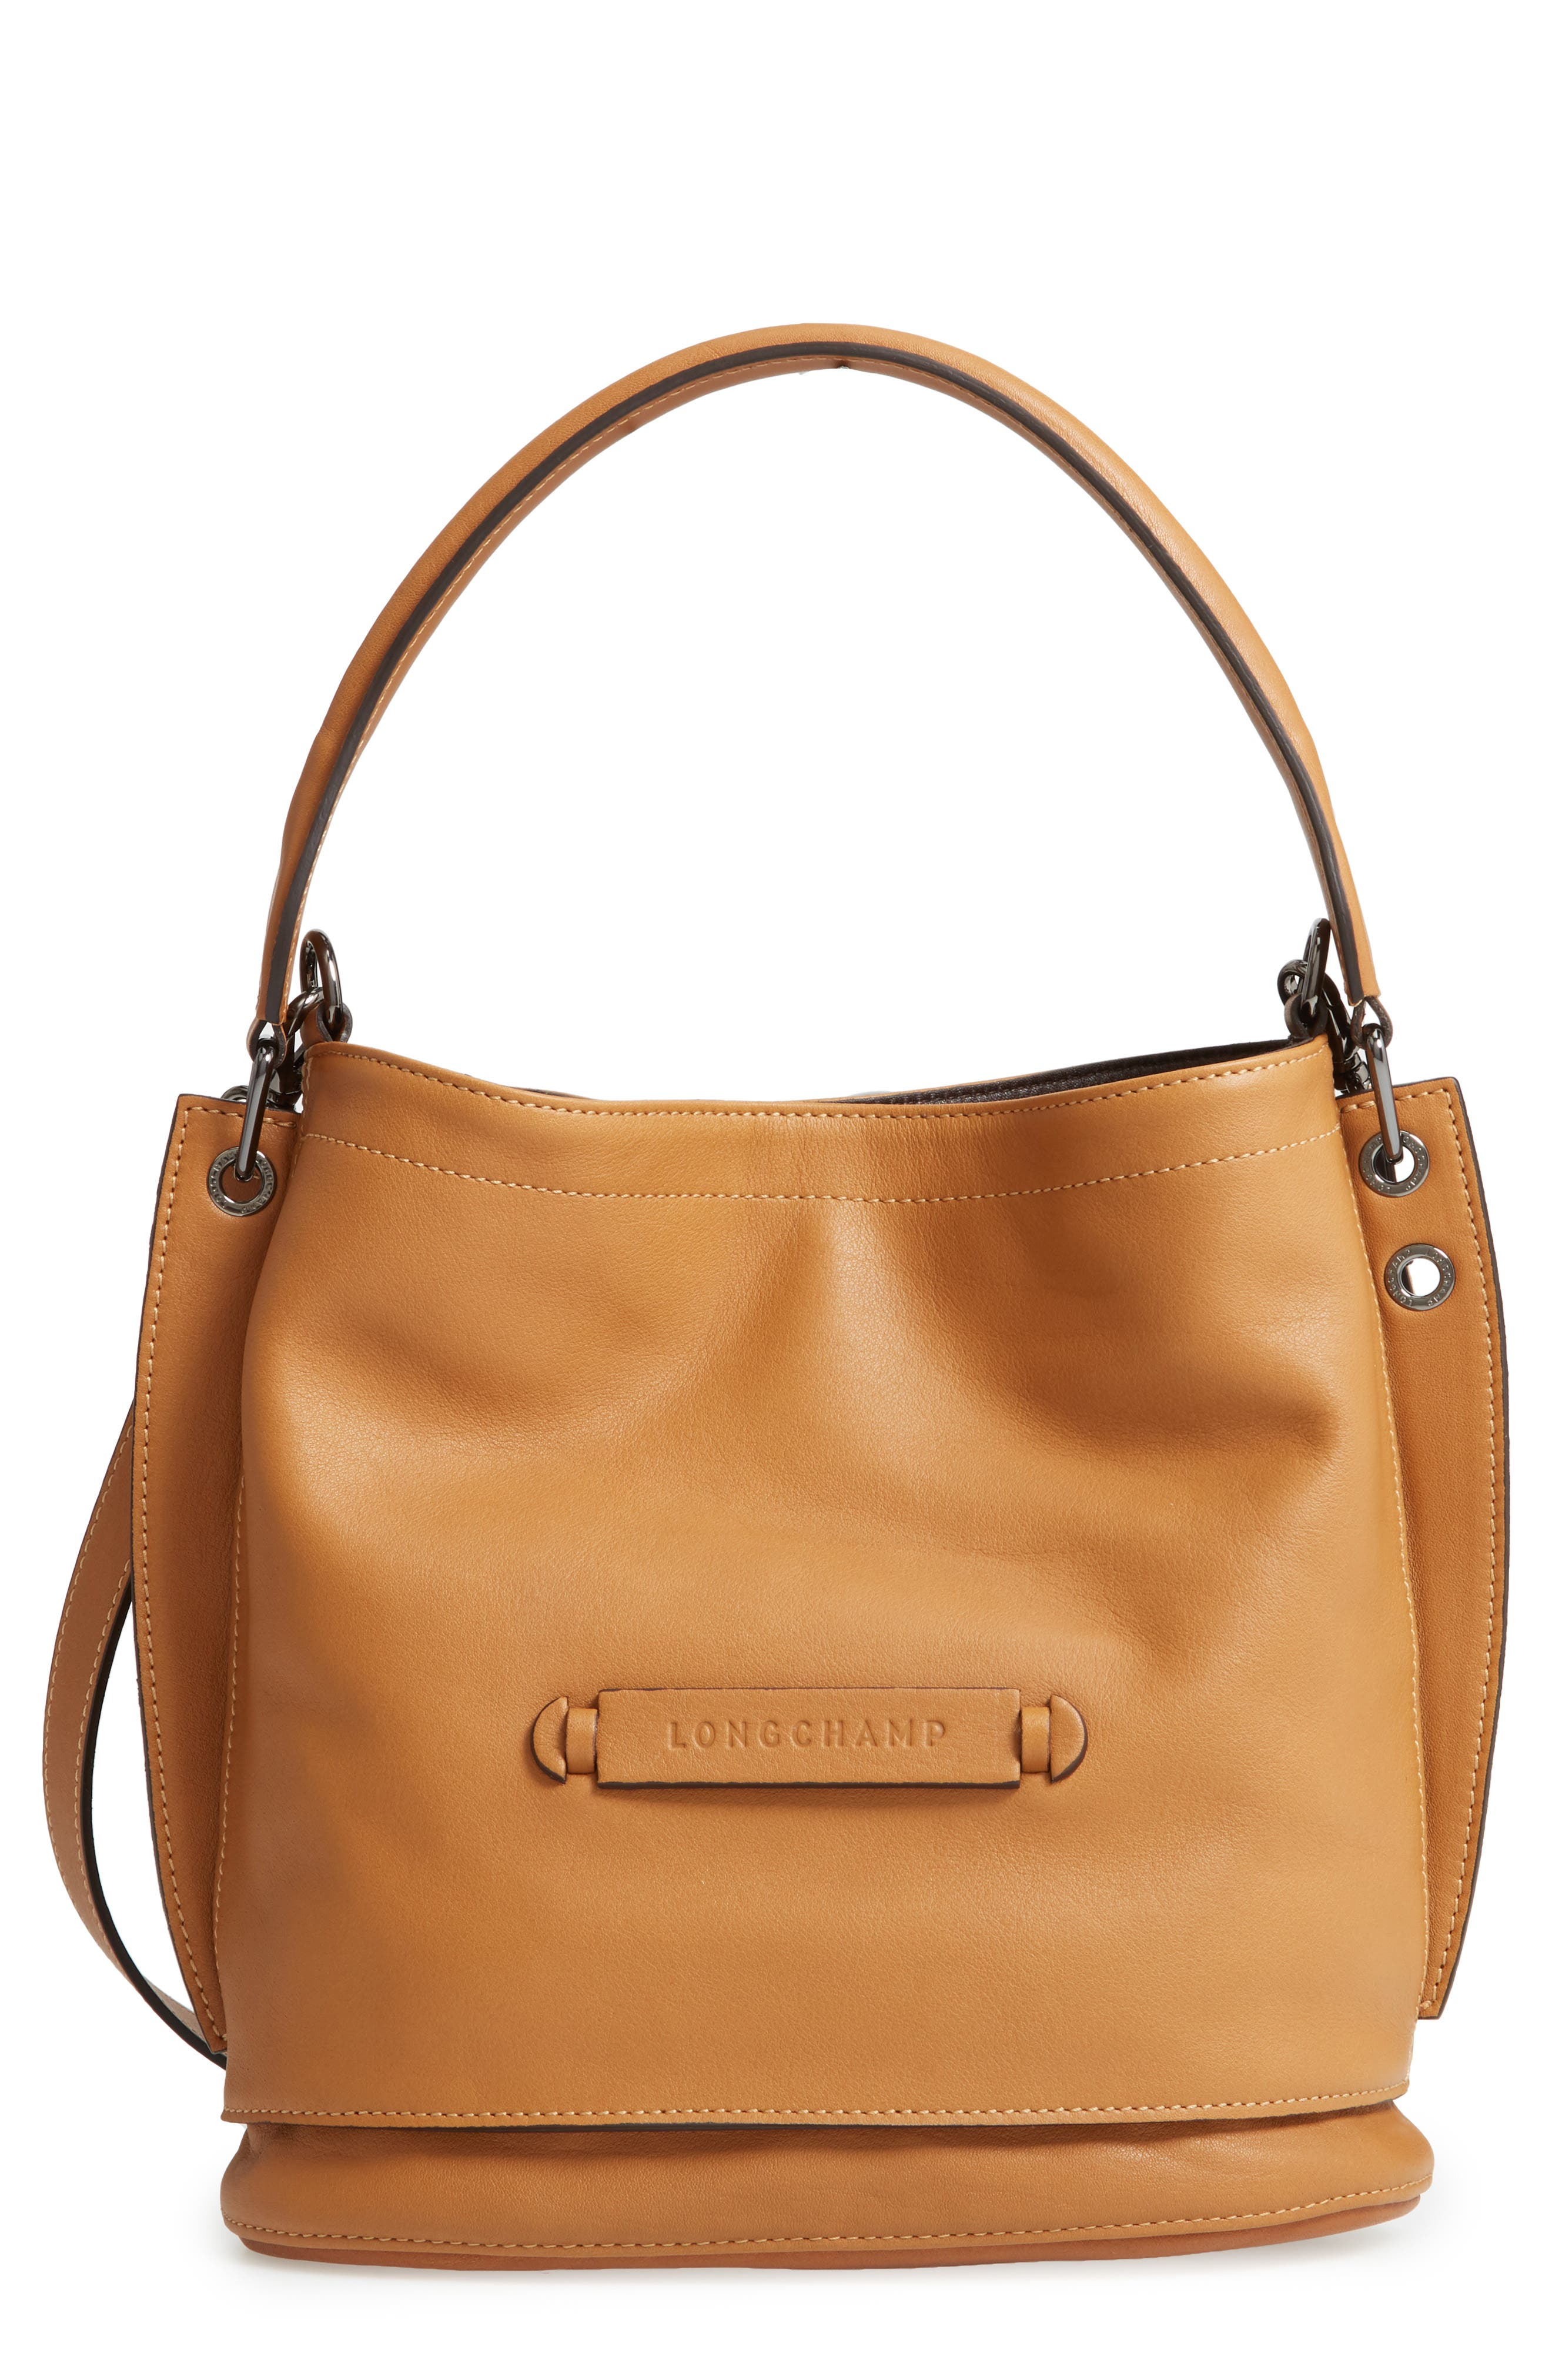 3D Leather Bucket Bag,                         Main,                         color, NATURAL